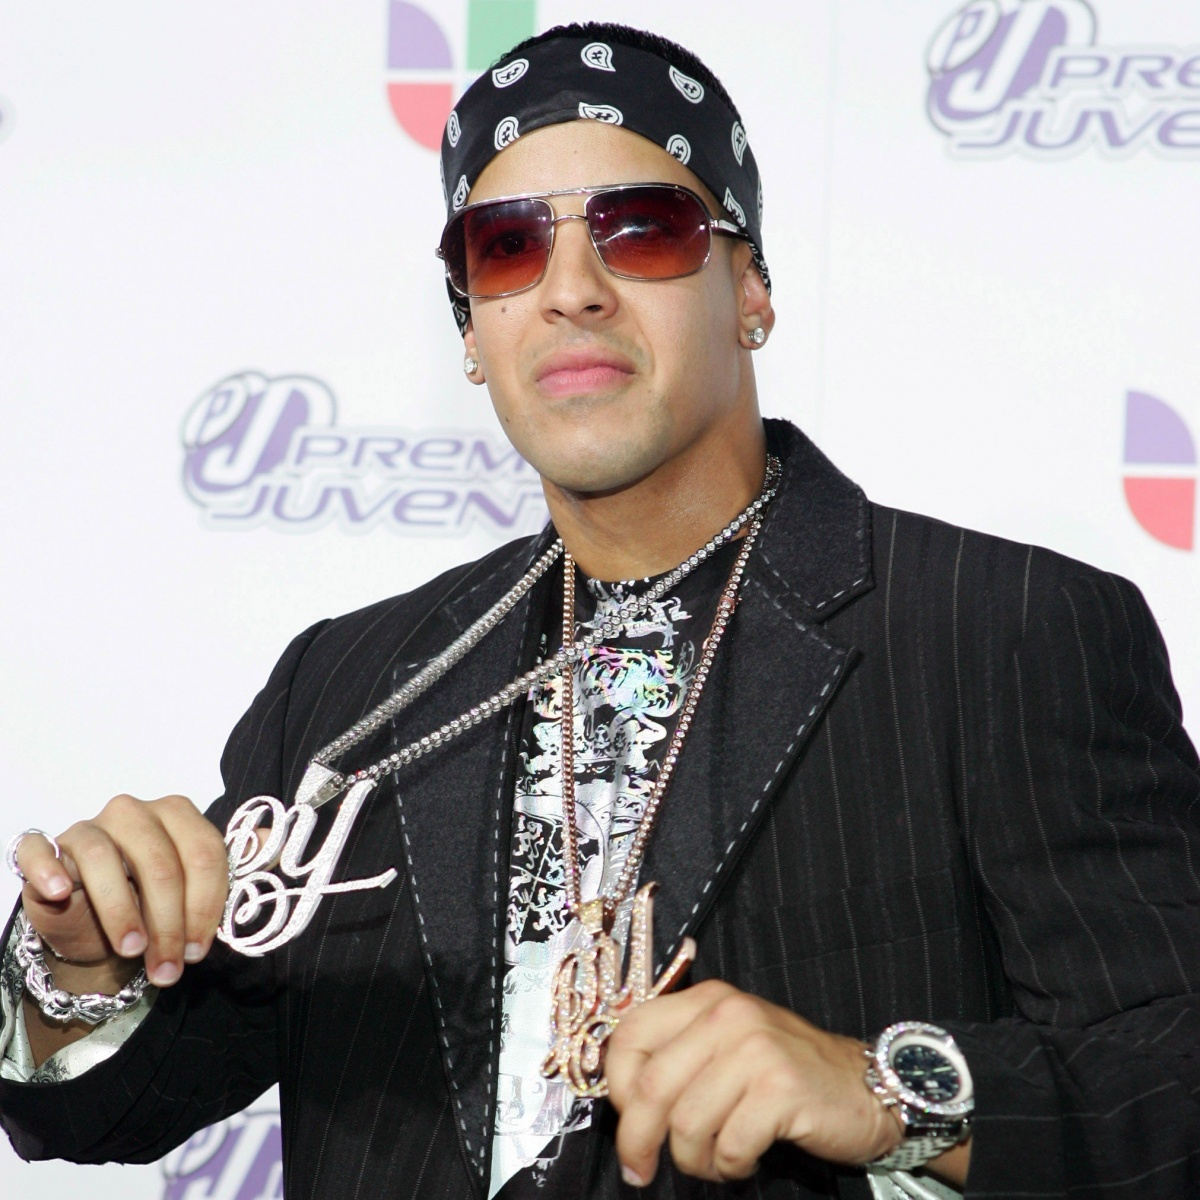 'Despacito' Rapper Daddy Yankee Robbed of $2M in jewellery ... Daddy Yankee